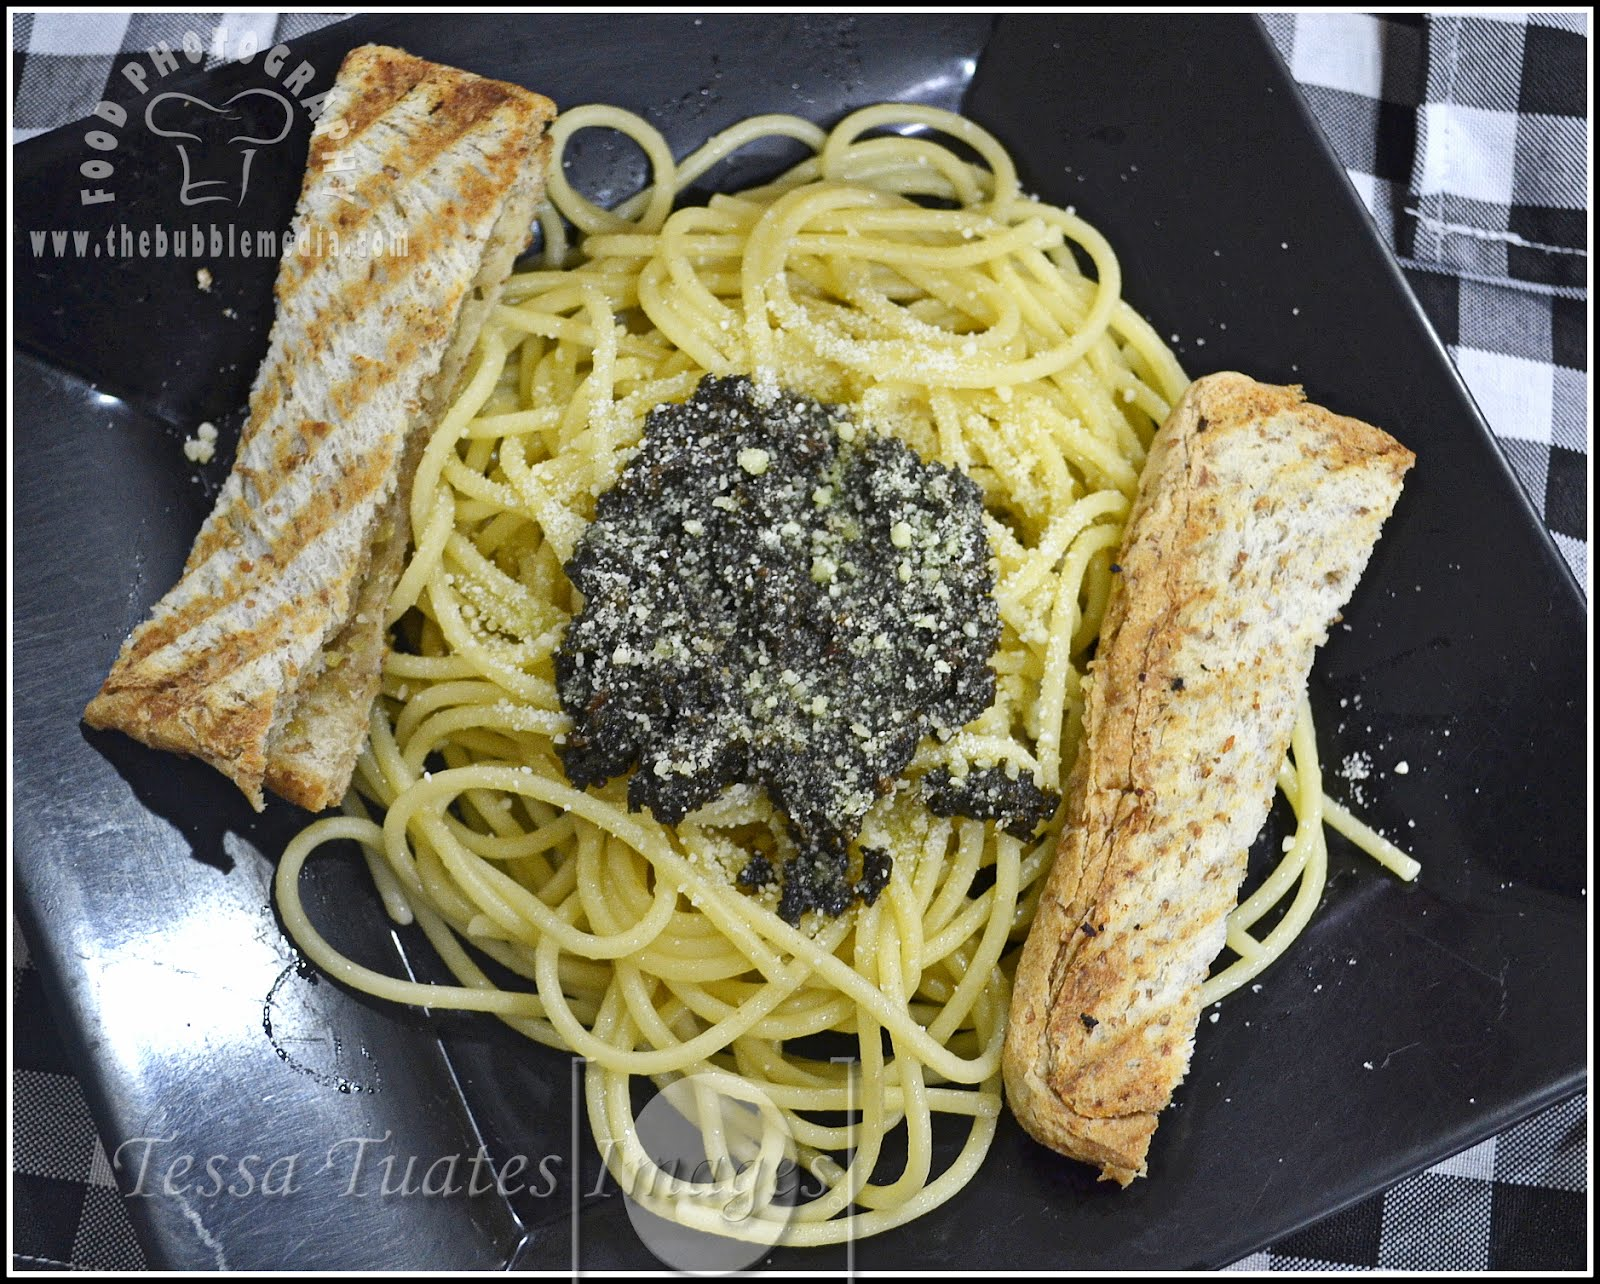 Pesto,  Fresh ground basil leaves and garlic in olive oil. http://www.thebubblemedia.com